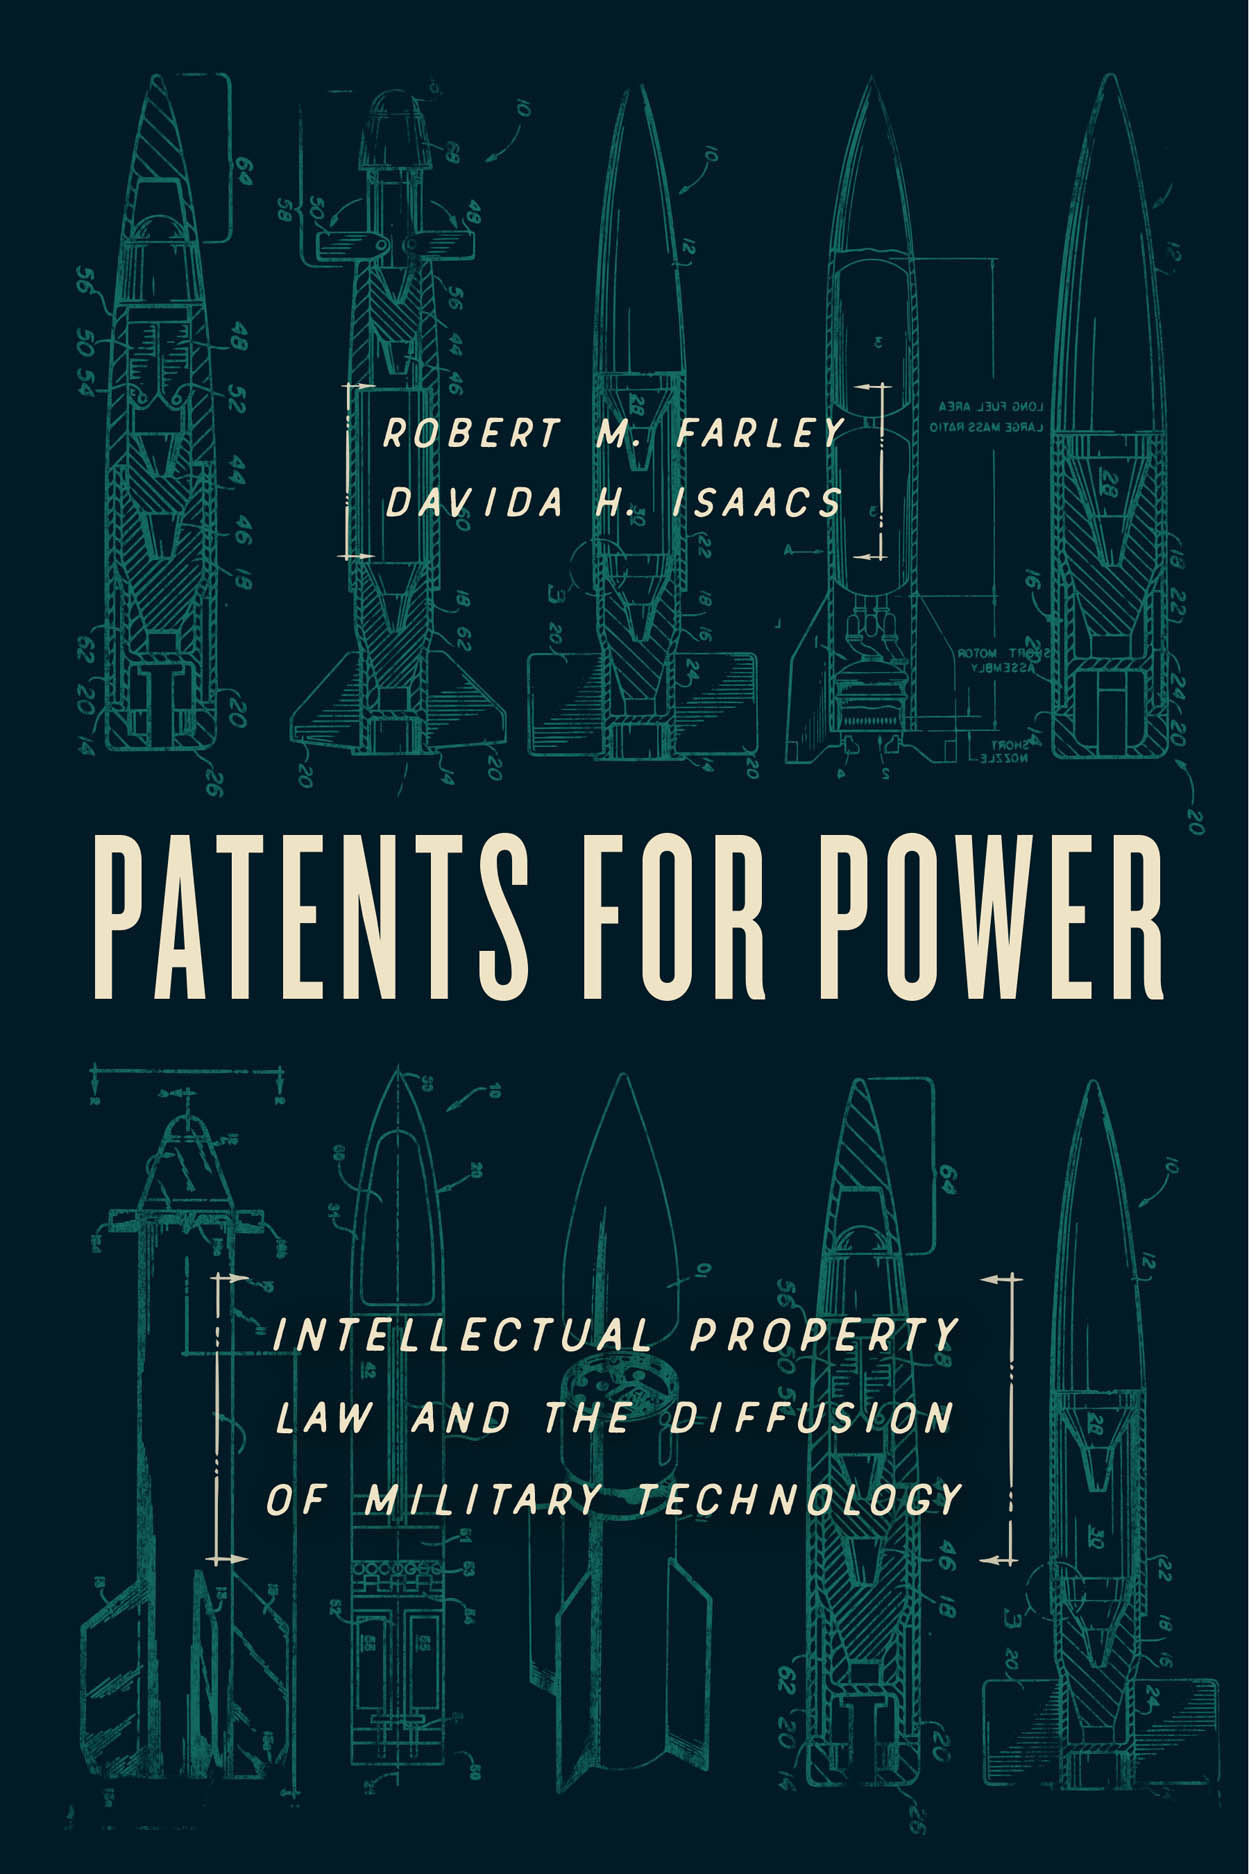 Patents for Power: Intellectual Property Law and the Diffusion of Military Technology